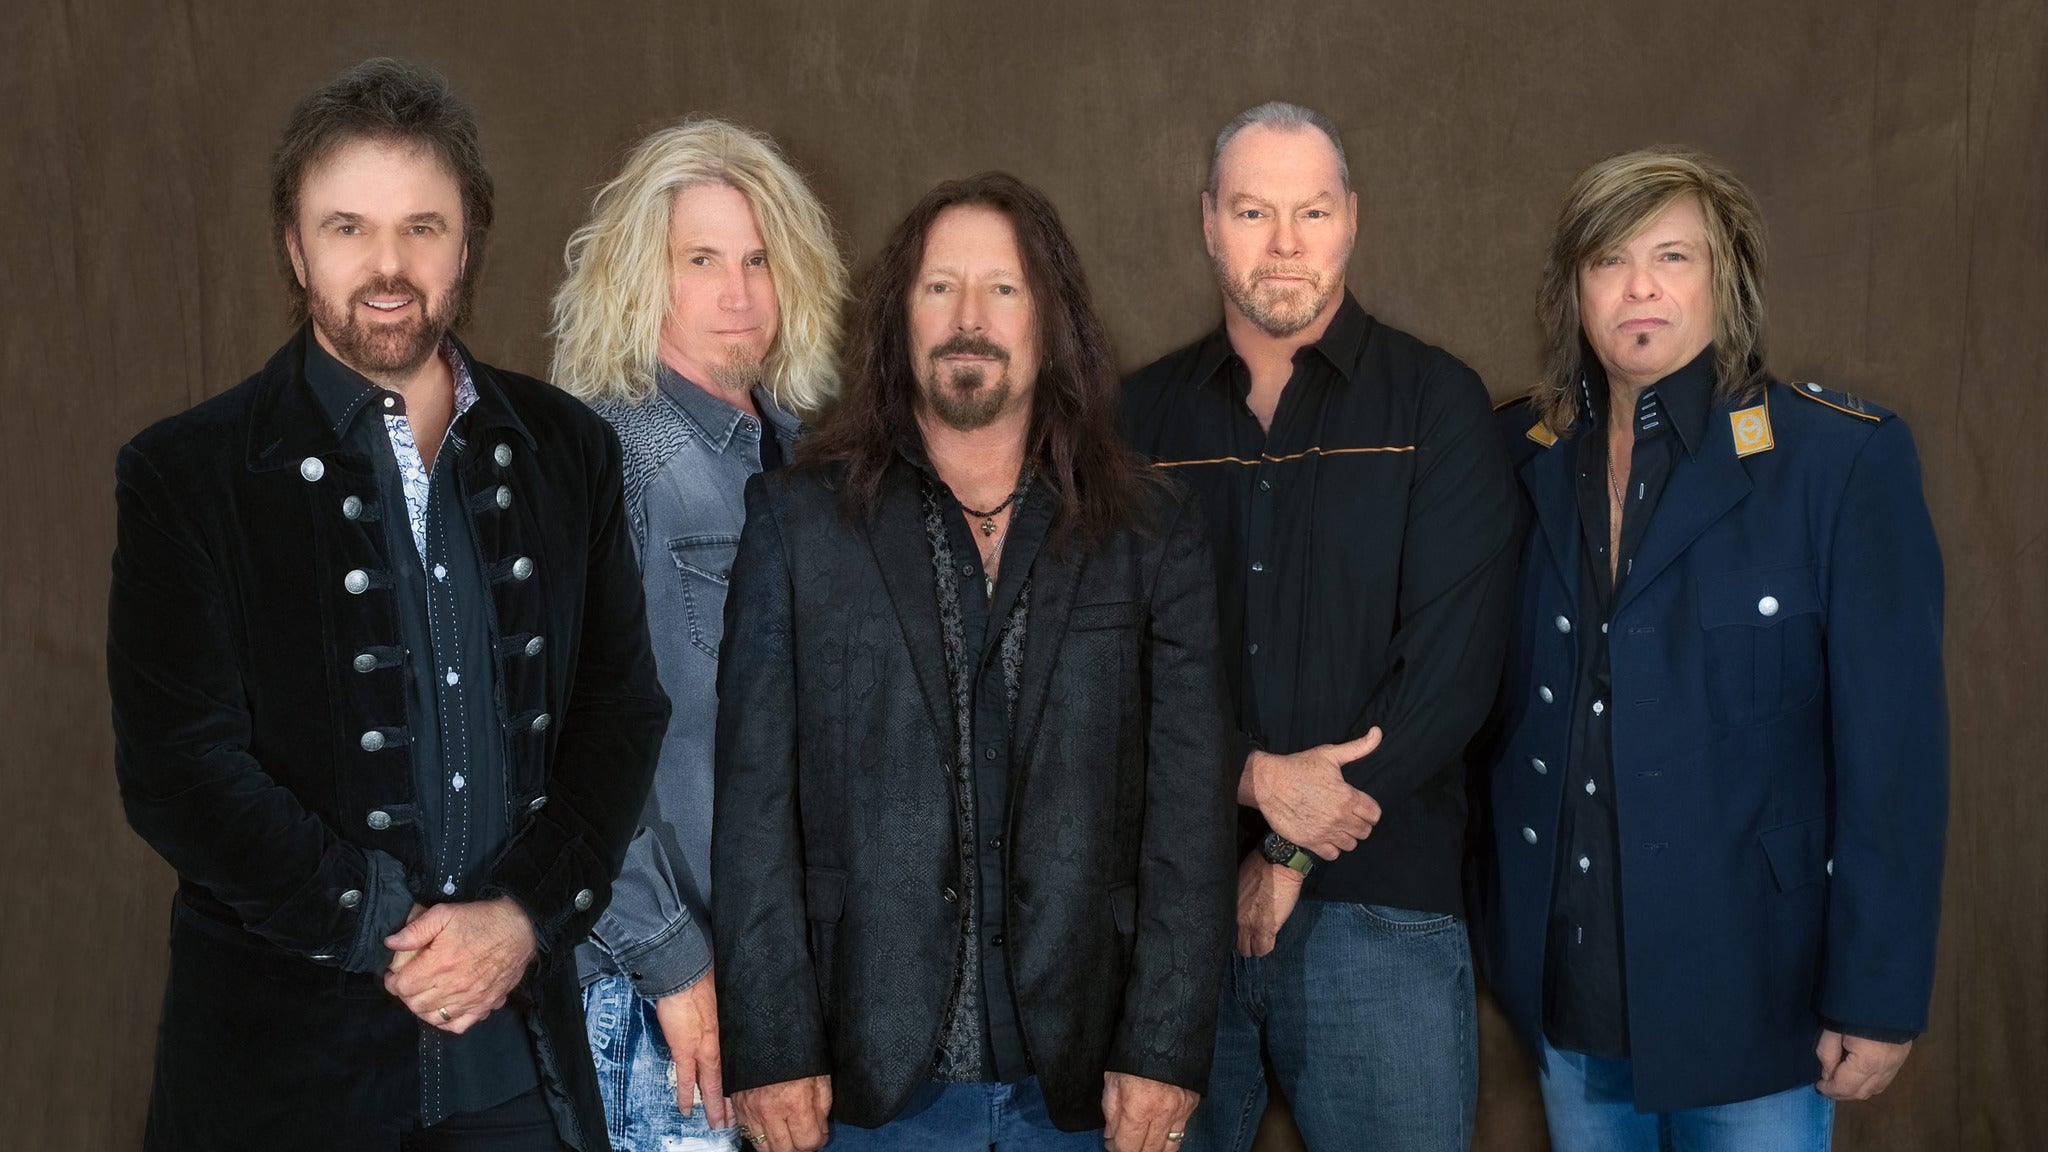 38 Special, the Marshall Tucker Band and Outlaws